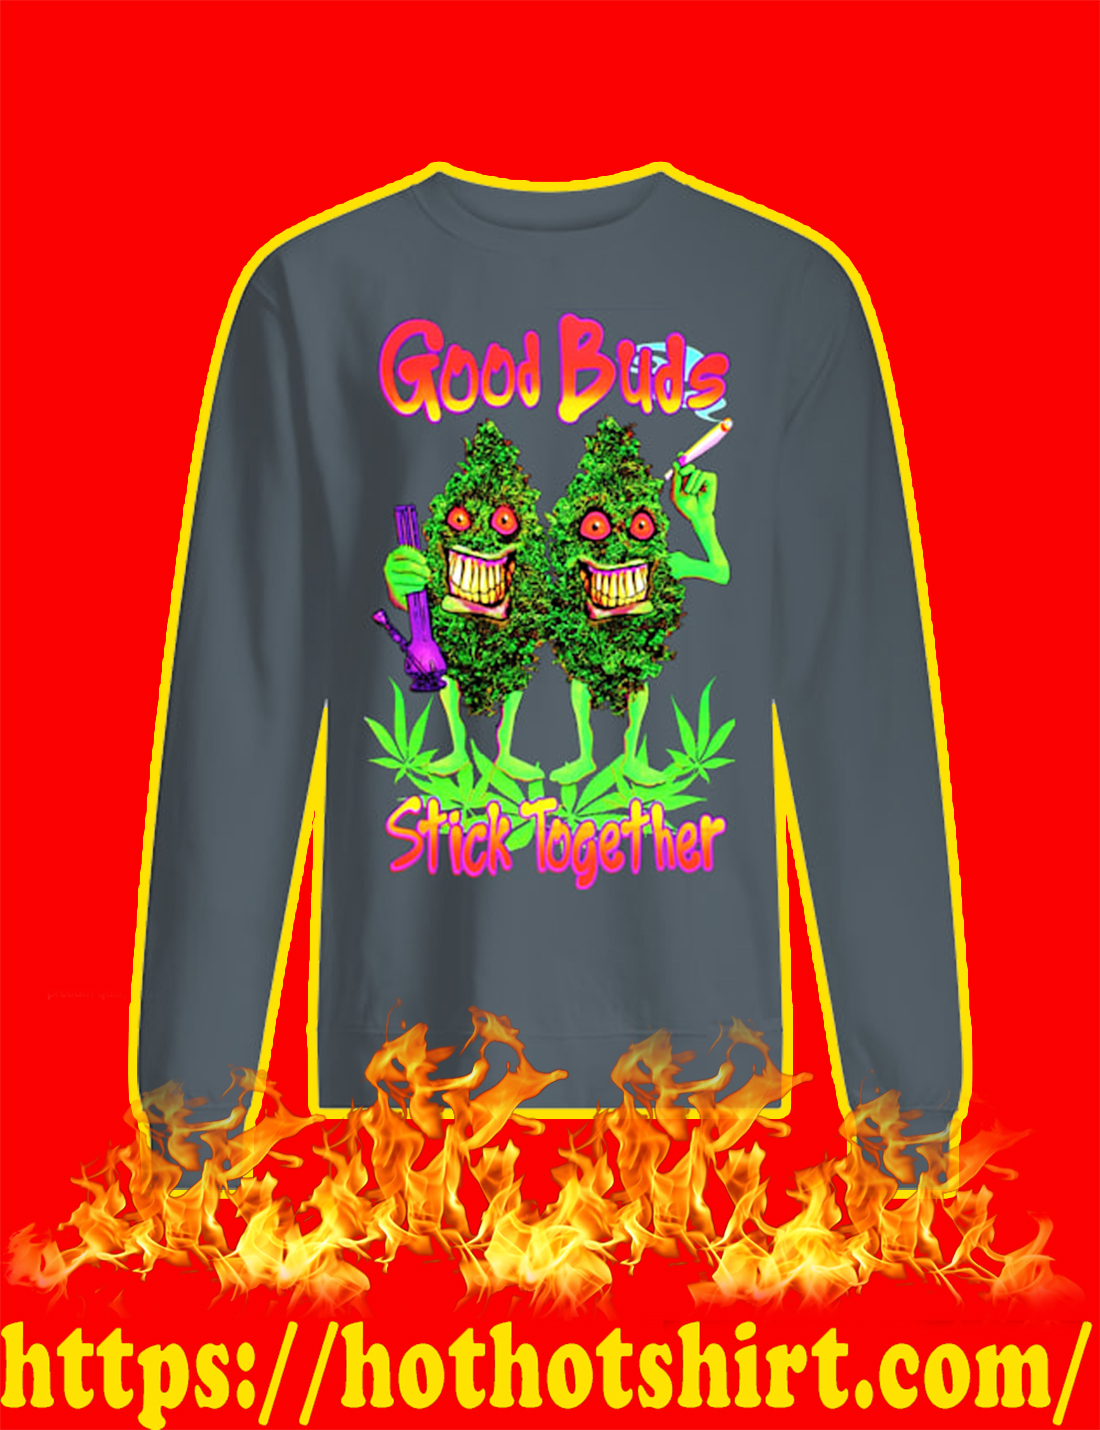 Good Buds Stick Together Weed sweatshirt